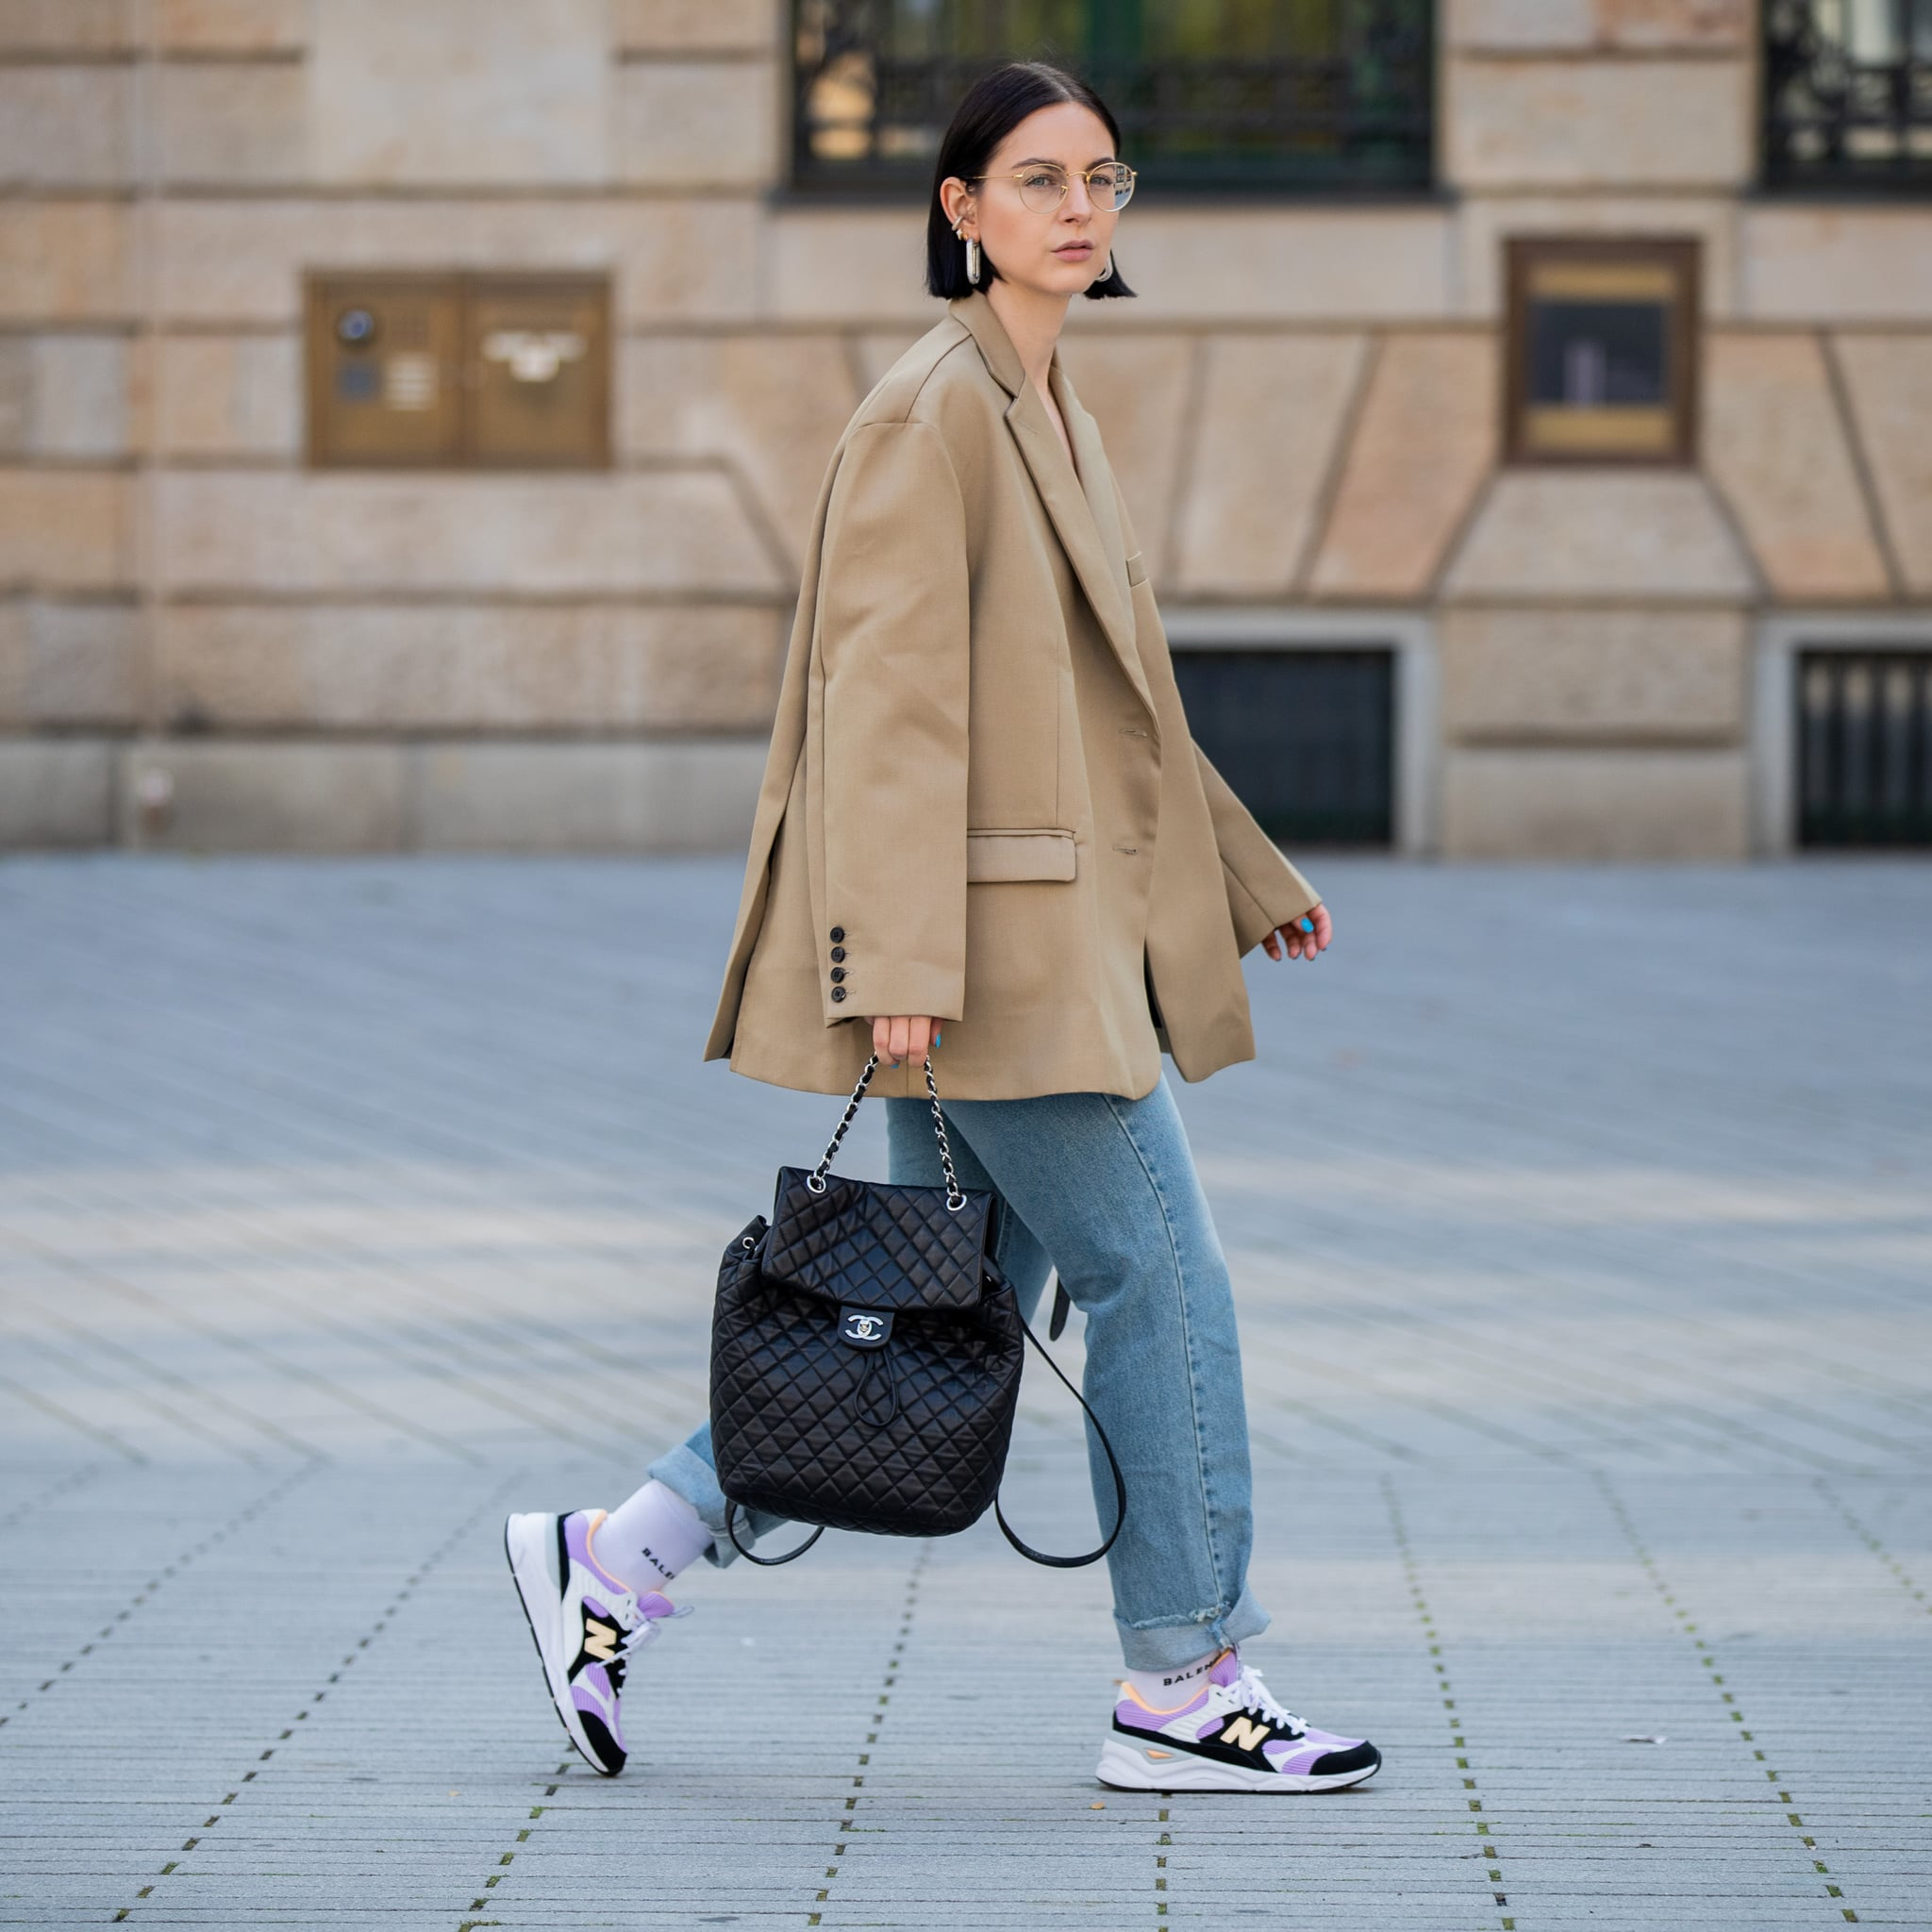 físico Espolvorear Para editar  The Best New Balance Sneakers For Women | POPSUGAR Fashion